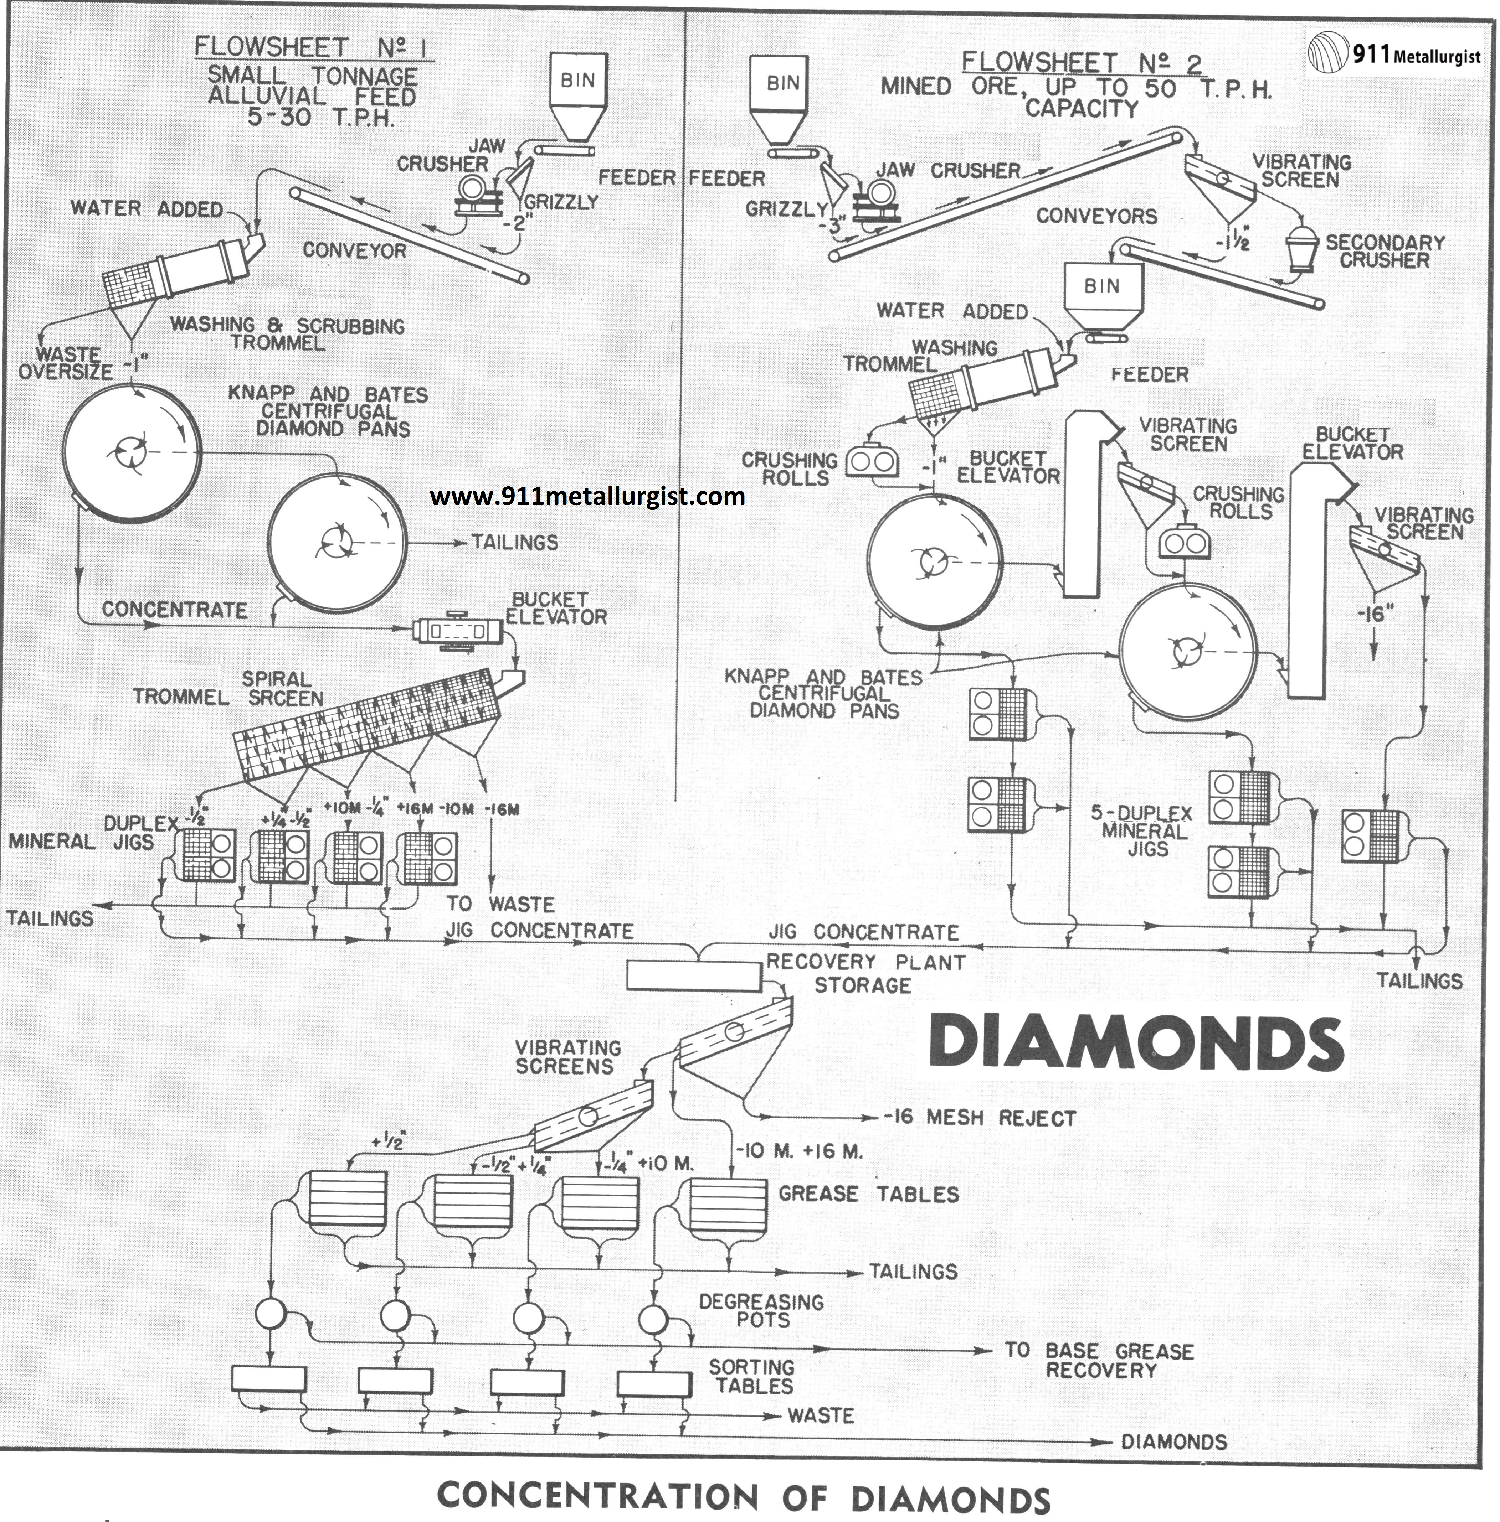 Concentration of Diamonds